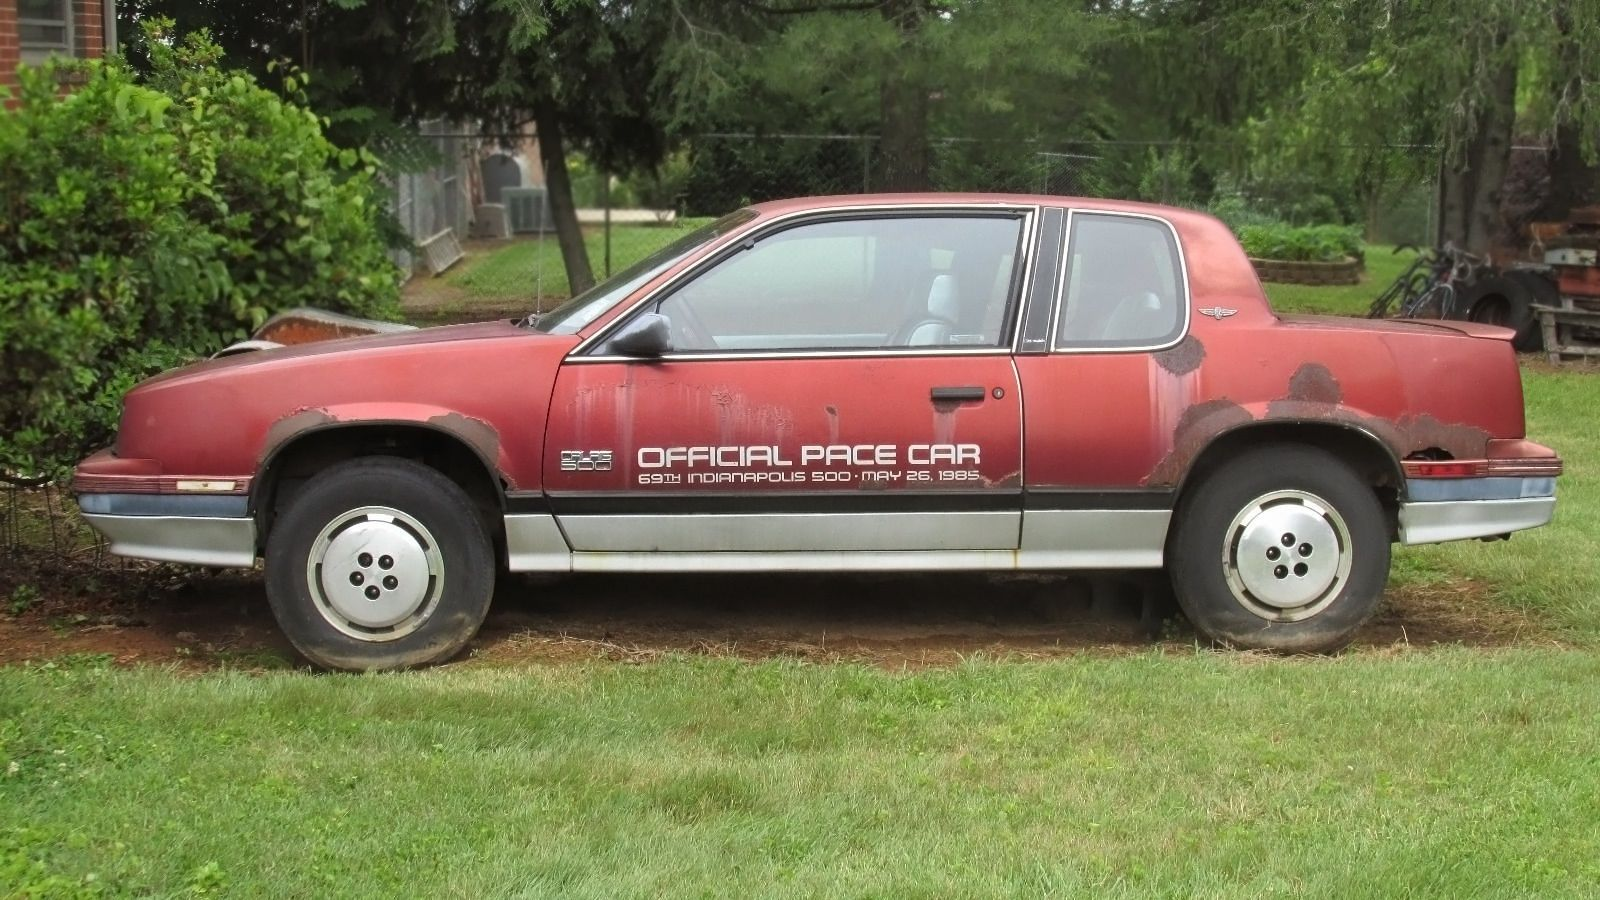 Speaking Of Indy Pace Cars This One Is A 1985 Oldsmobile Calais Car And Its Located In Lenoir North Carolina State That Knows Thing Or Two